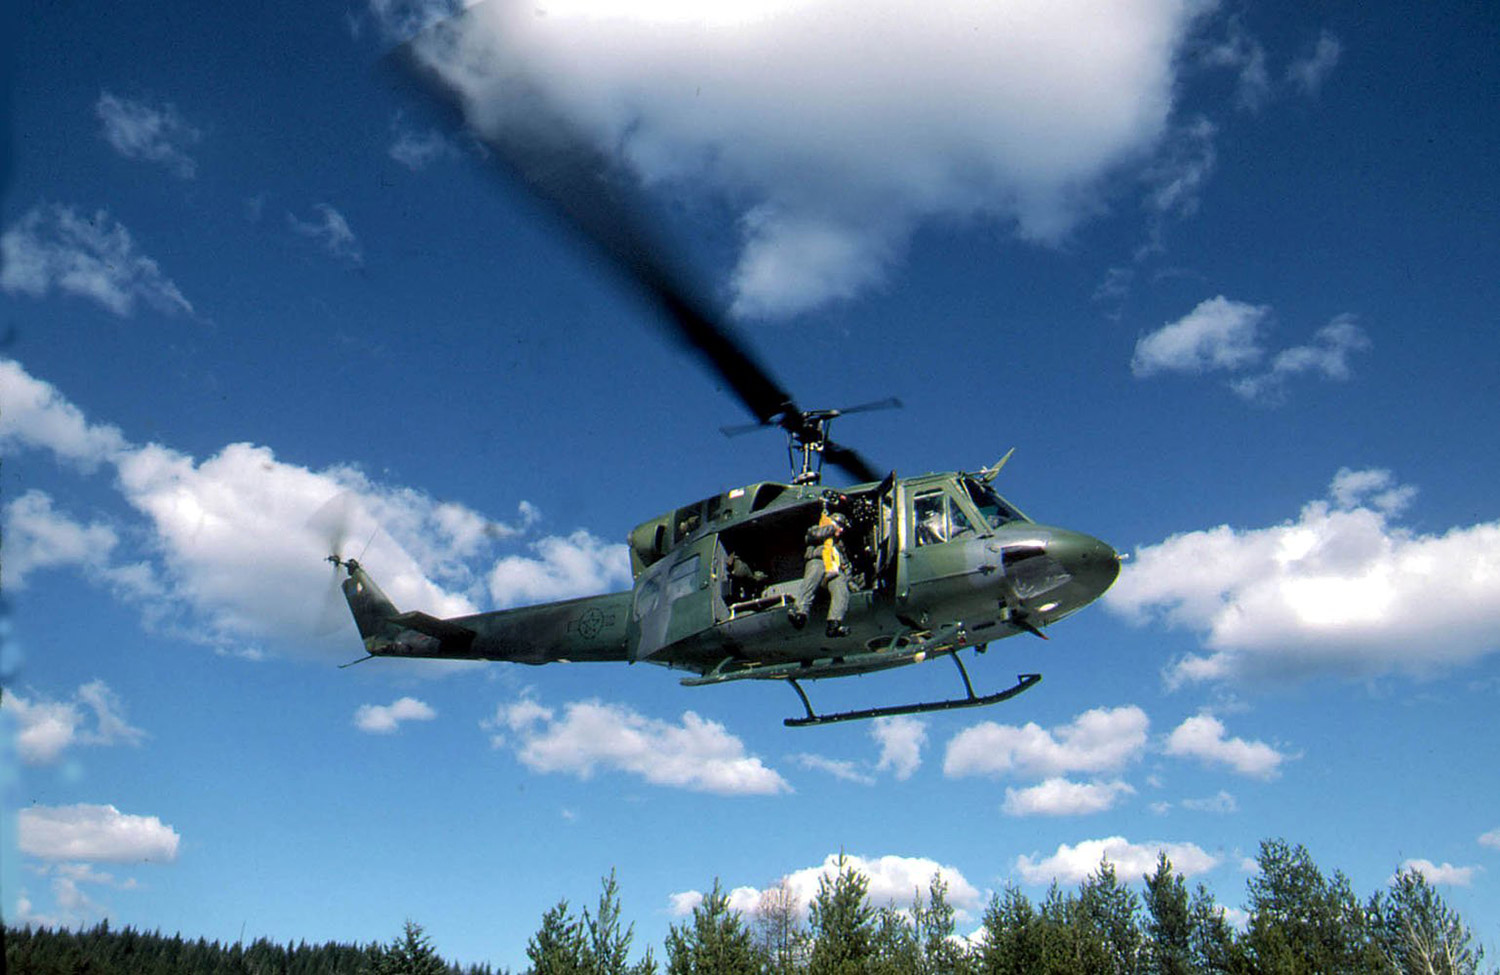 UH-1N helicopter